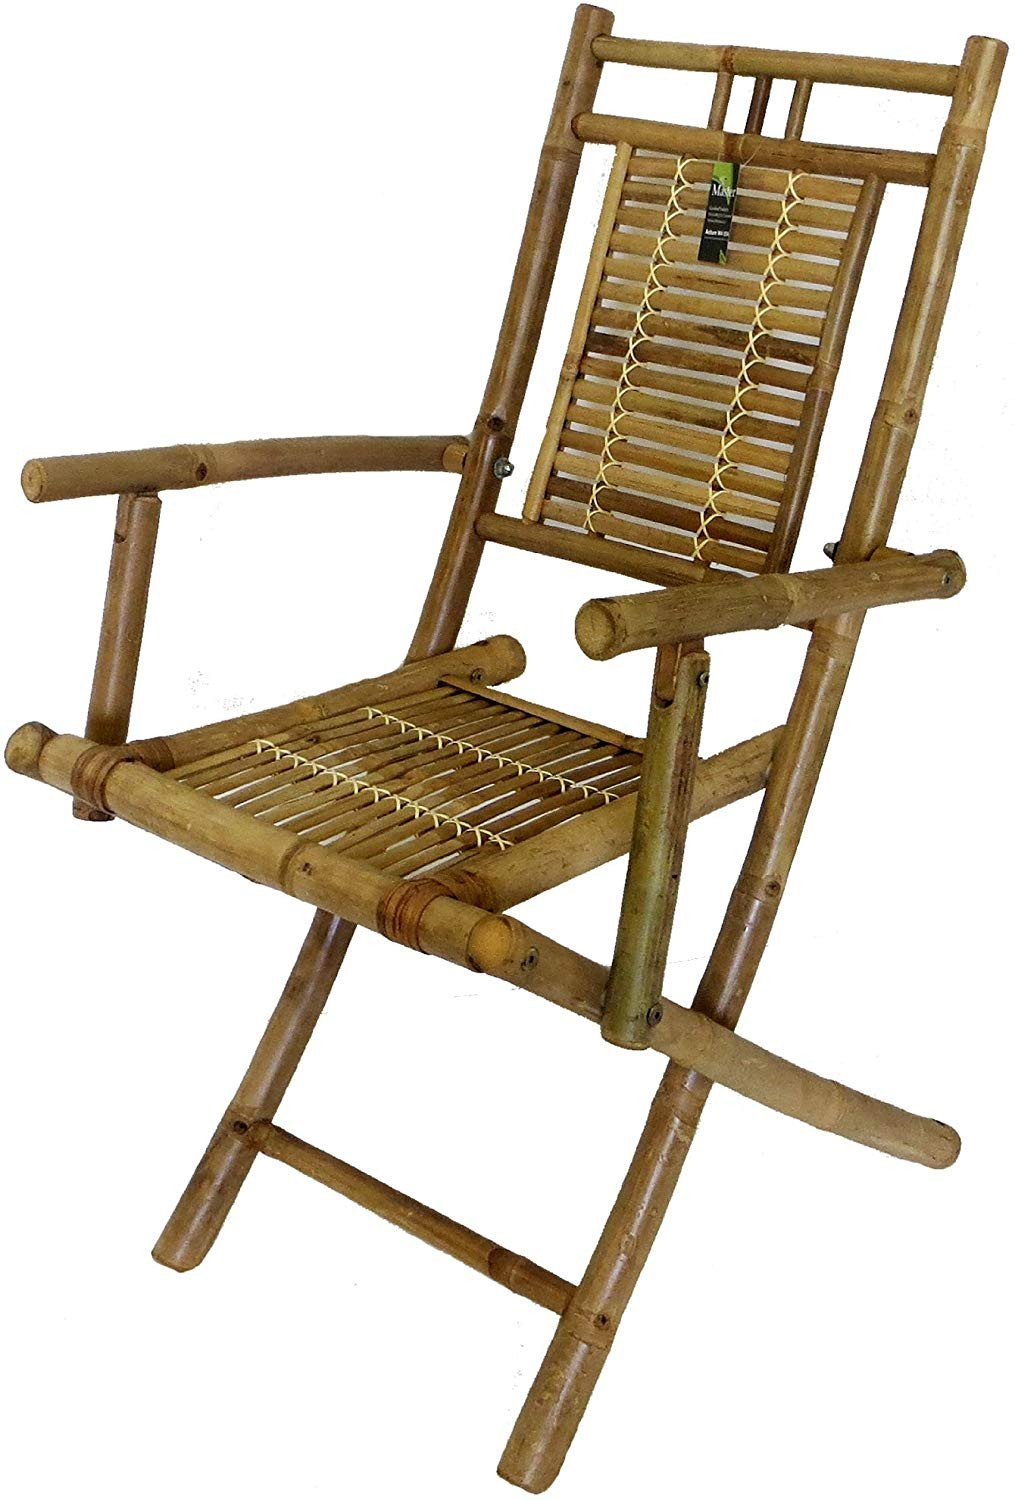 Lounge Chairs for Teen Bedroom Lovely Foldable Bamboo Chair with Arm Rests